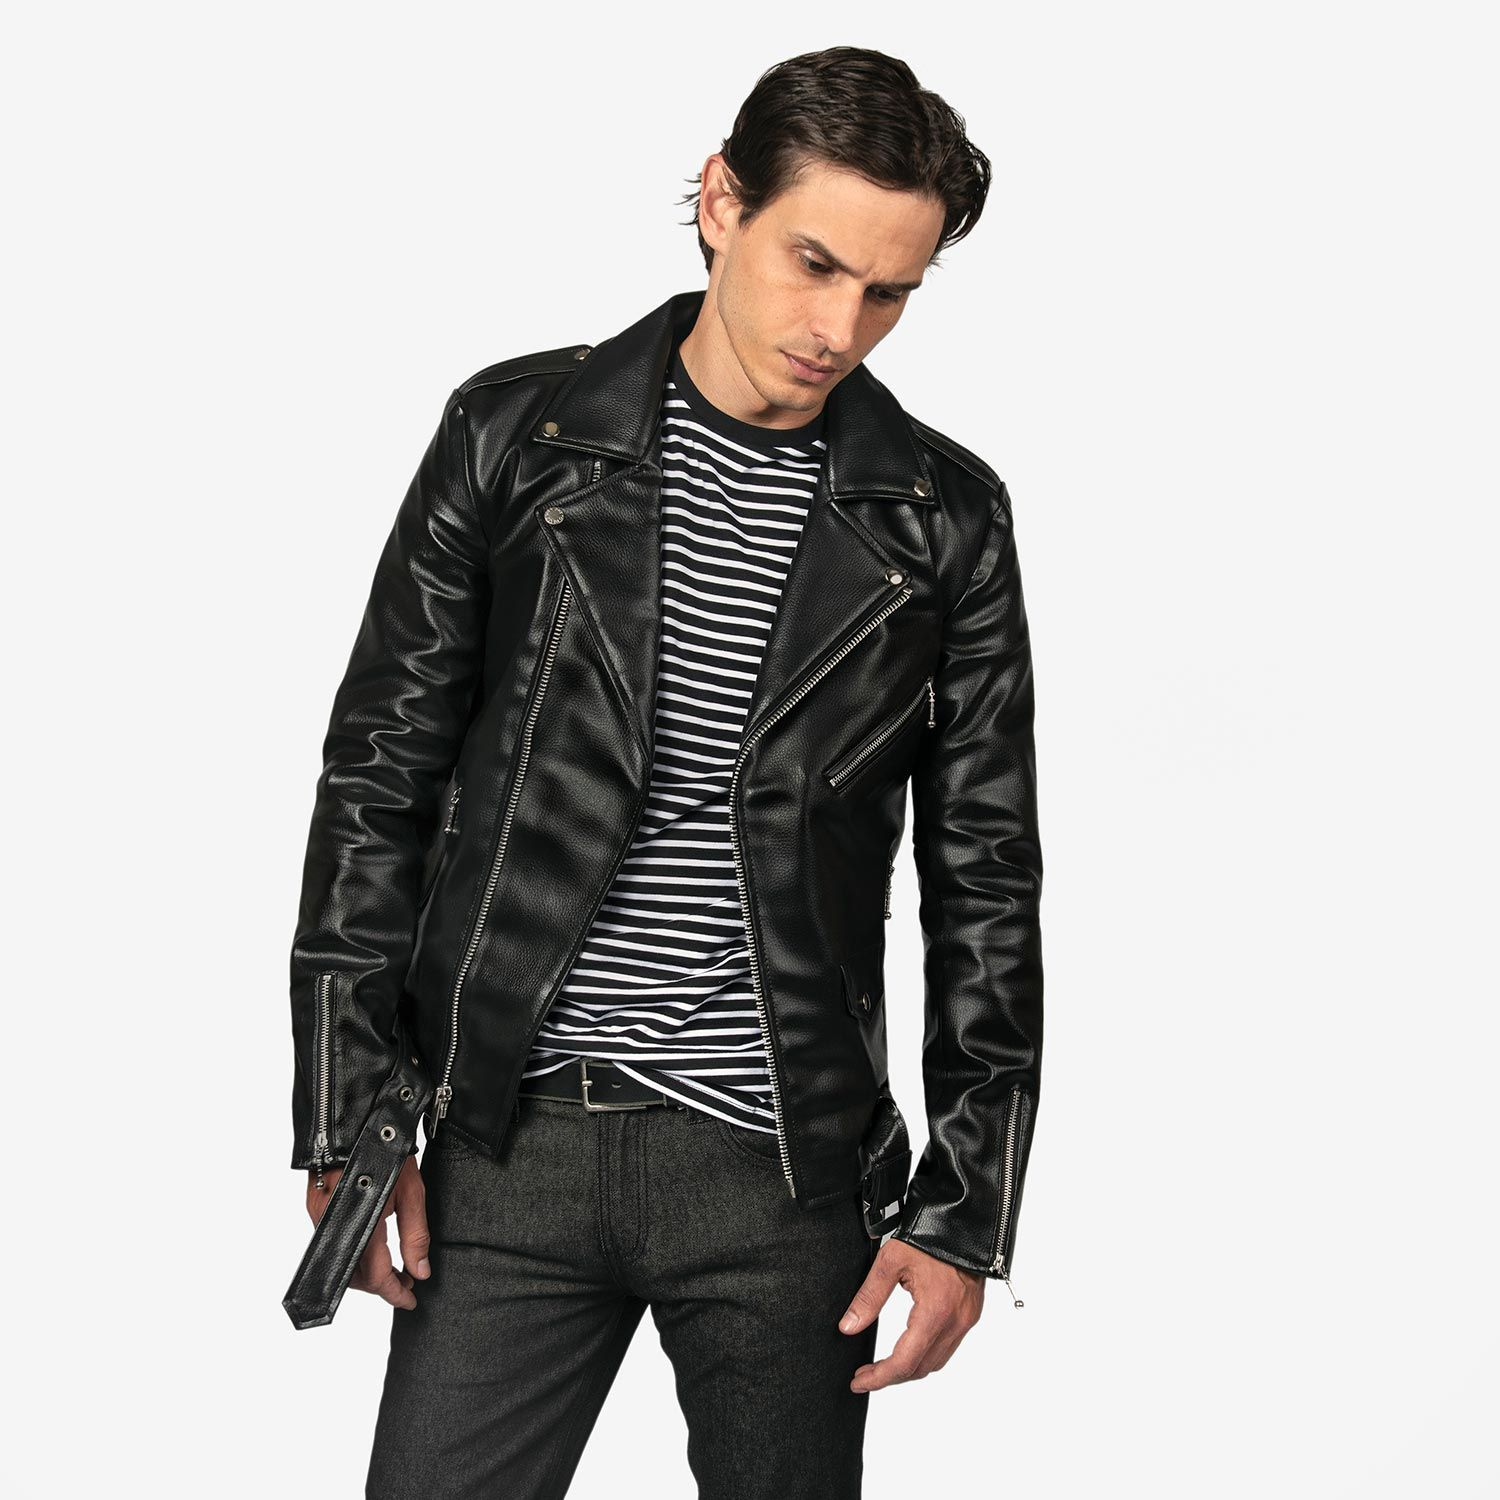 7dda669ba9 Shop Long Vegan Commando II - Black Artificial Leather Jacket with Nickel  Hardware for Tall Men from Straight To Hell Apparel. Live loud.